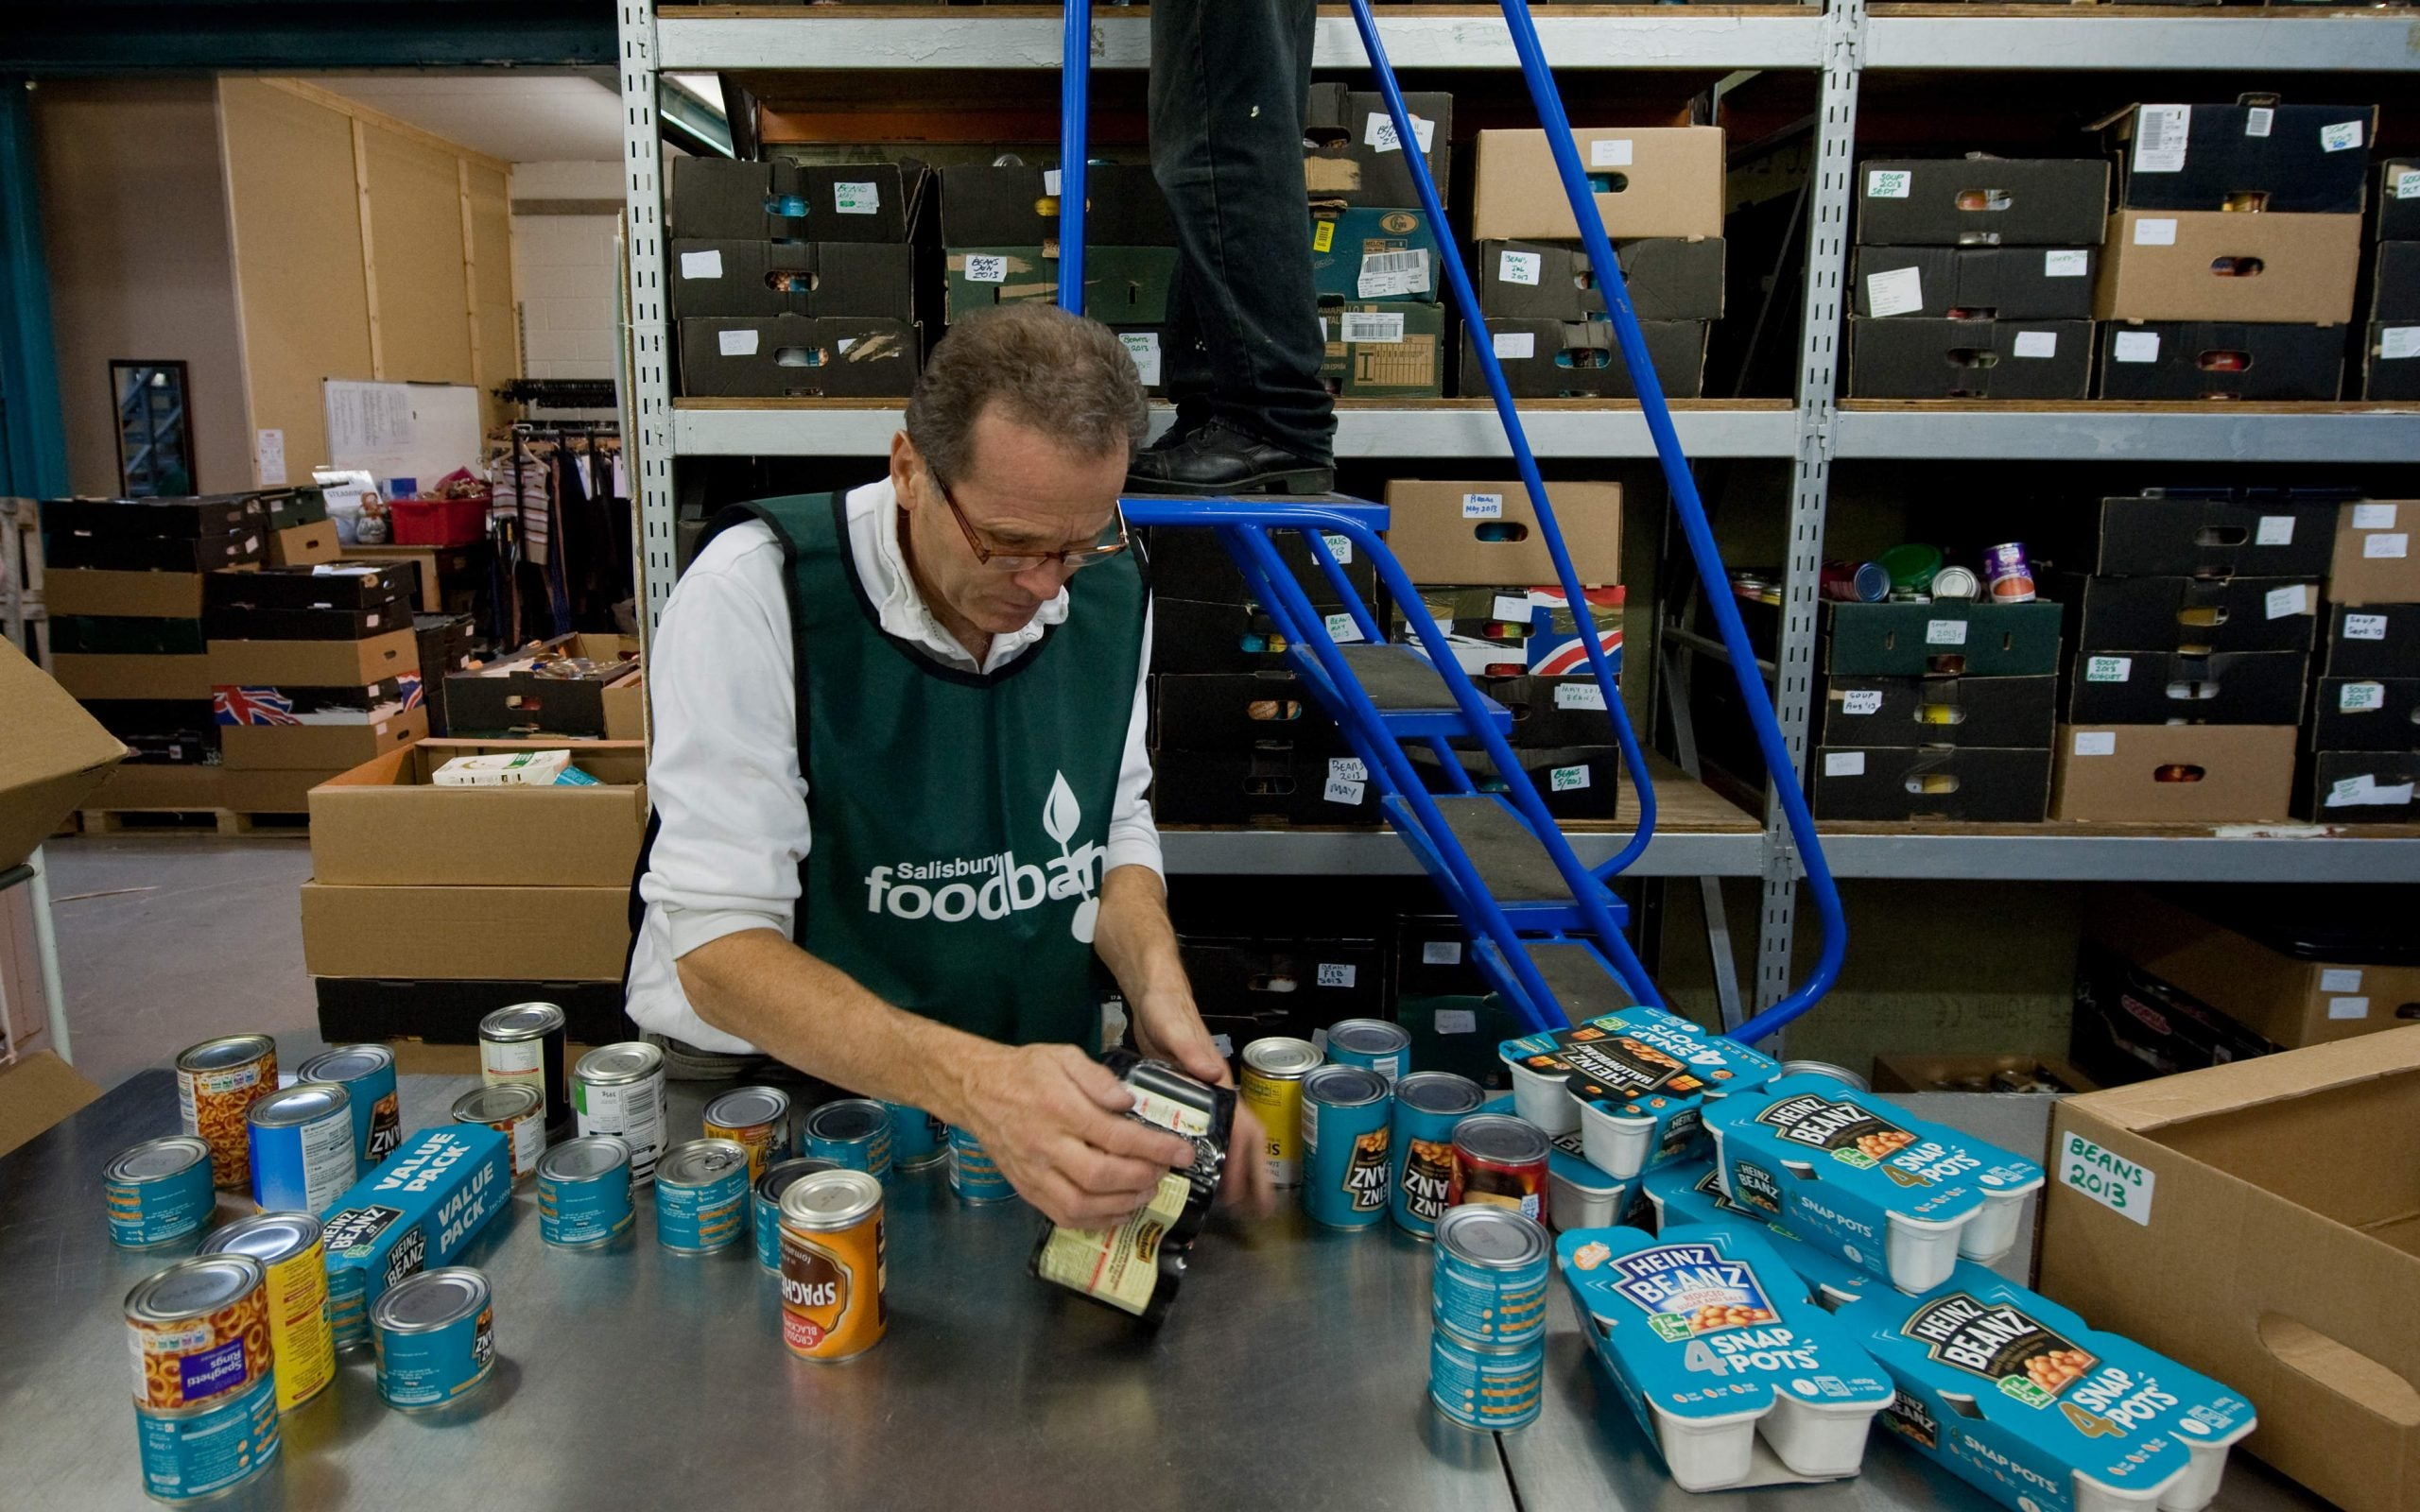 Ministers can no longer deny the link between food banks and benefit cuts